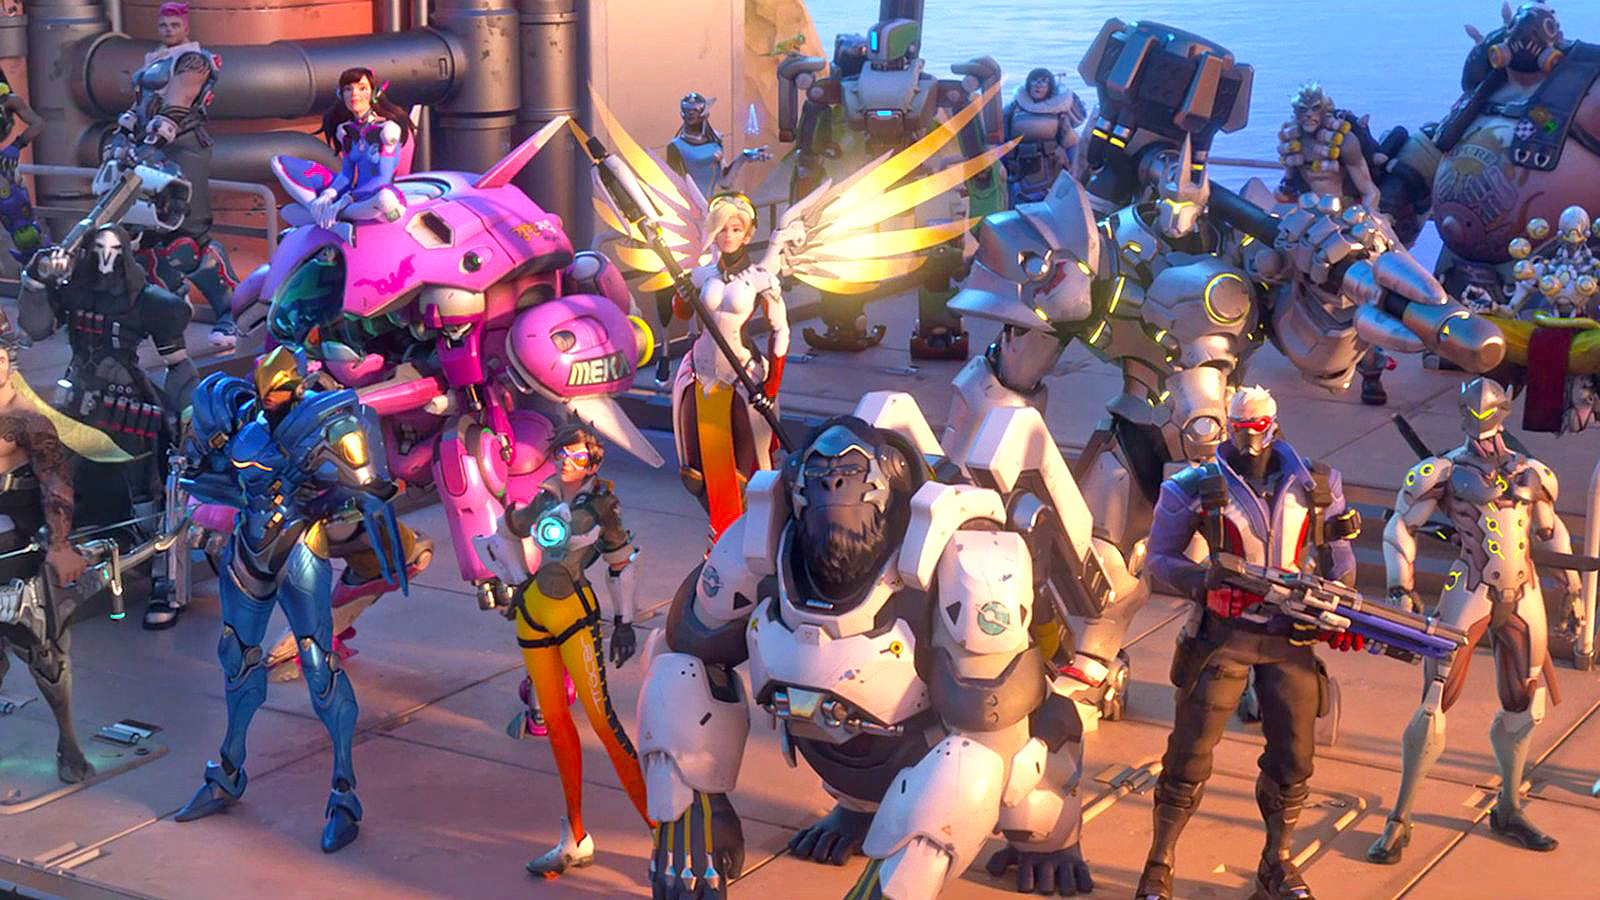 Overwatch' Sigma: Release Date, Abilities, Leaks, and Rumors